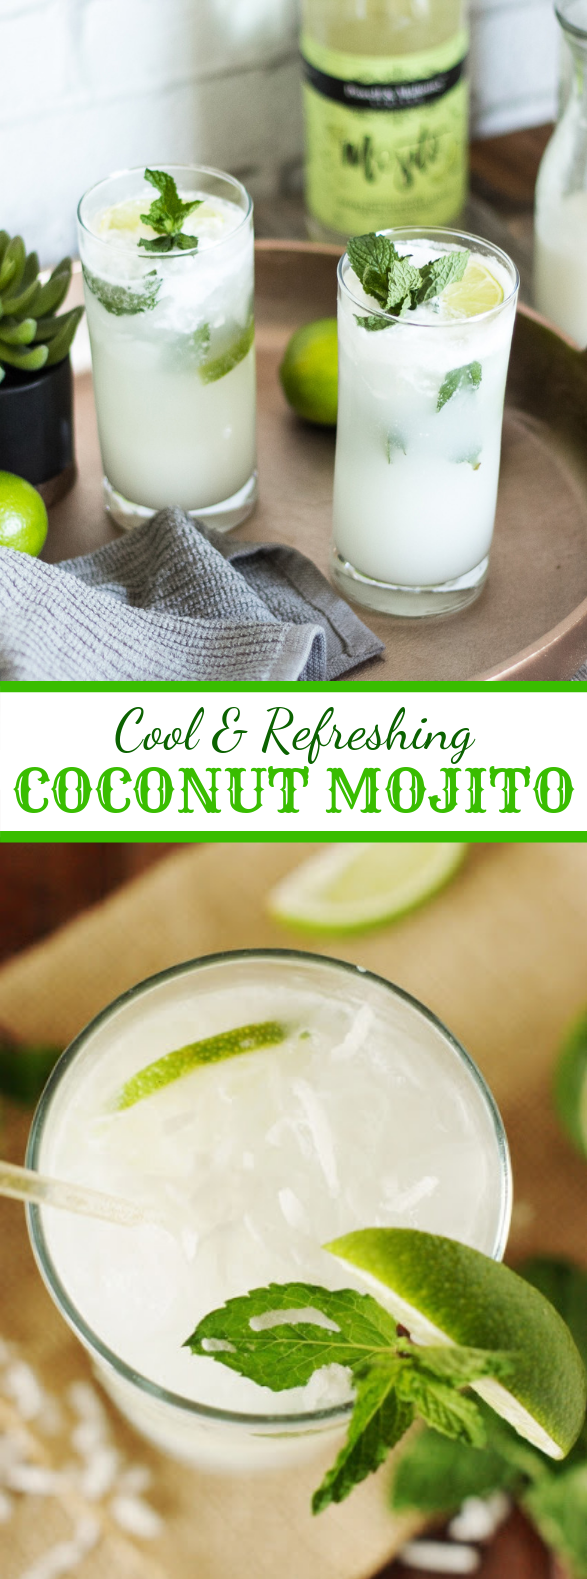 COCONUT MOJITO #drinks #fresh